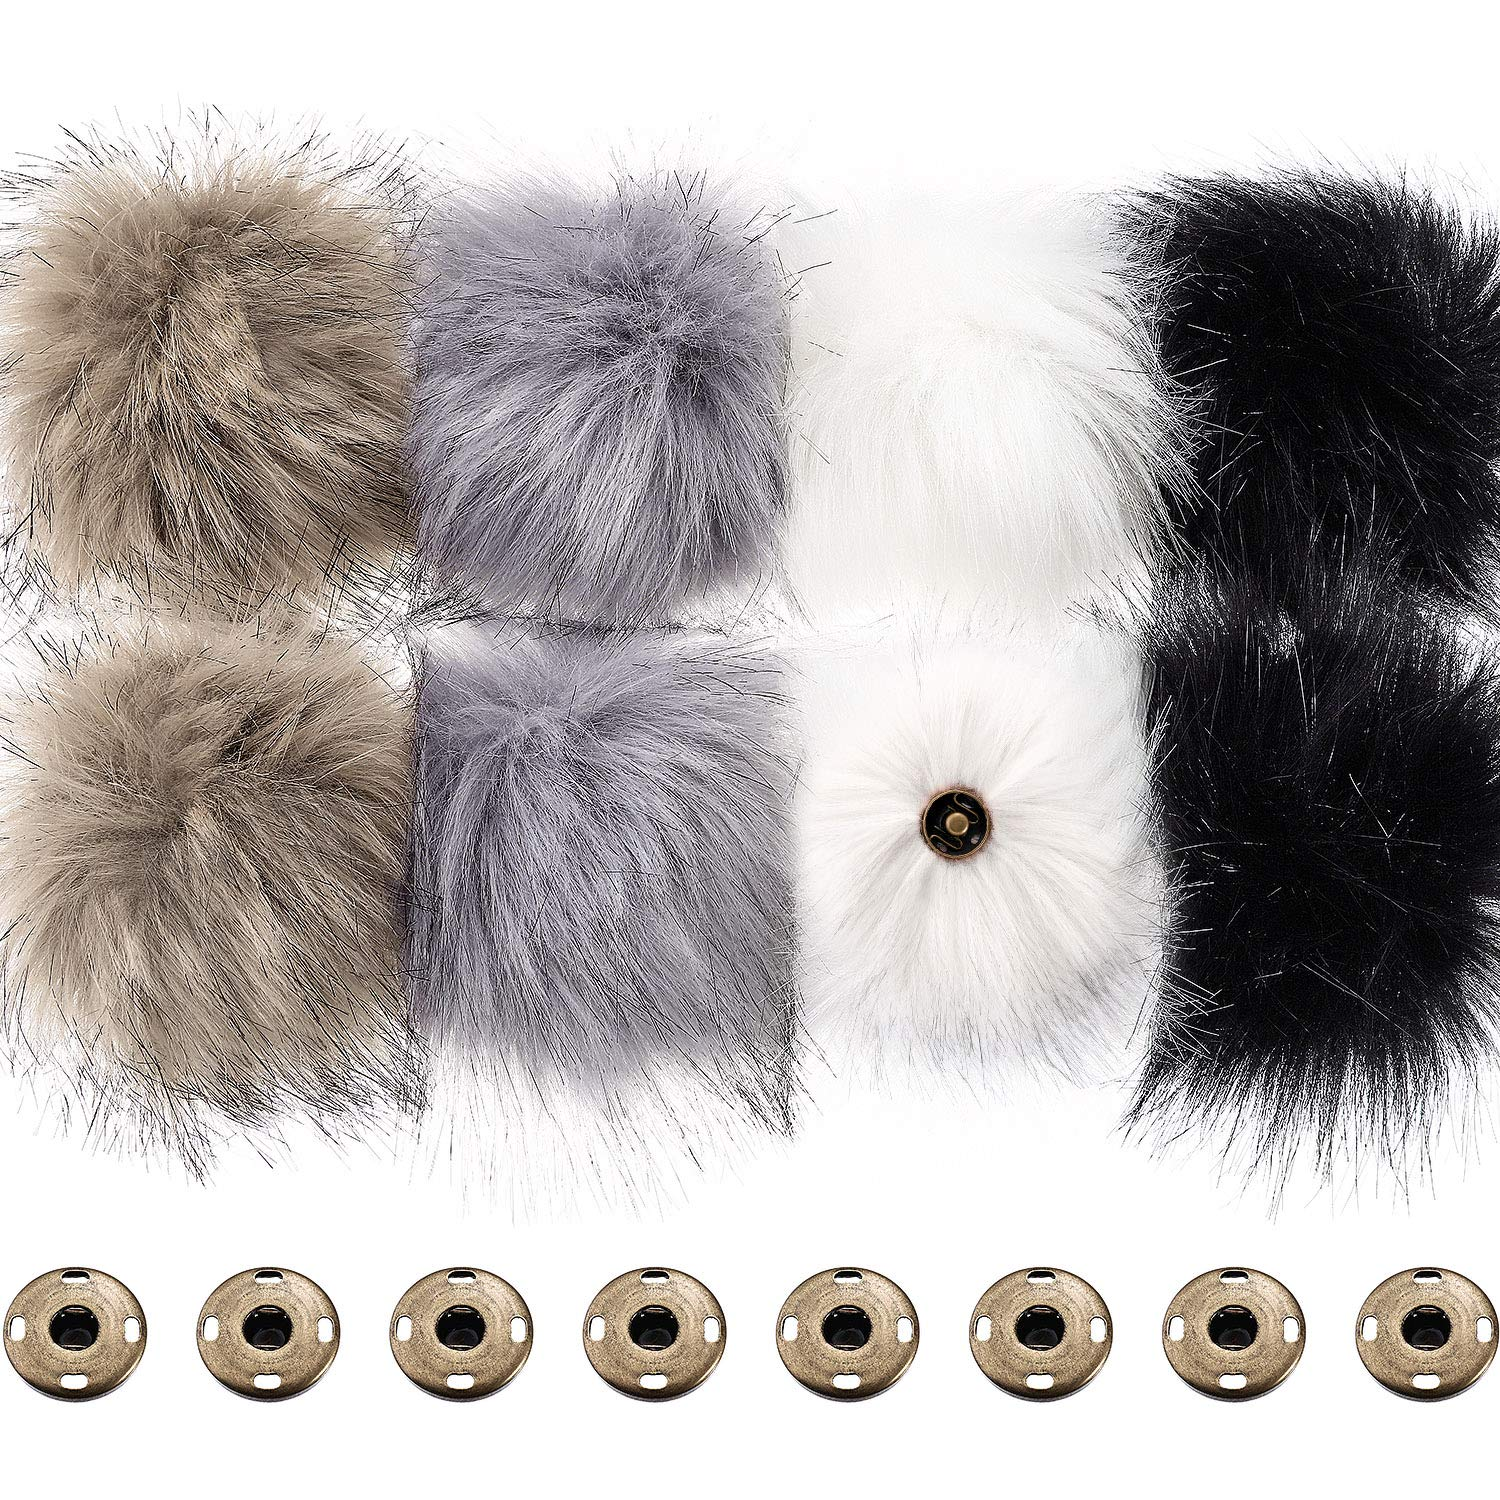 12Pcs DIY Faux Fox Fur Fluffy Pompom Ball,Mixed Color Faux Fox Fur Pompoms Ball with Snap Button for Knitting Garments Hat Accessories 3.9 Inches